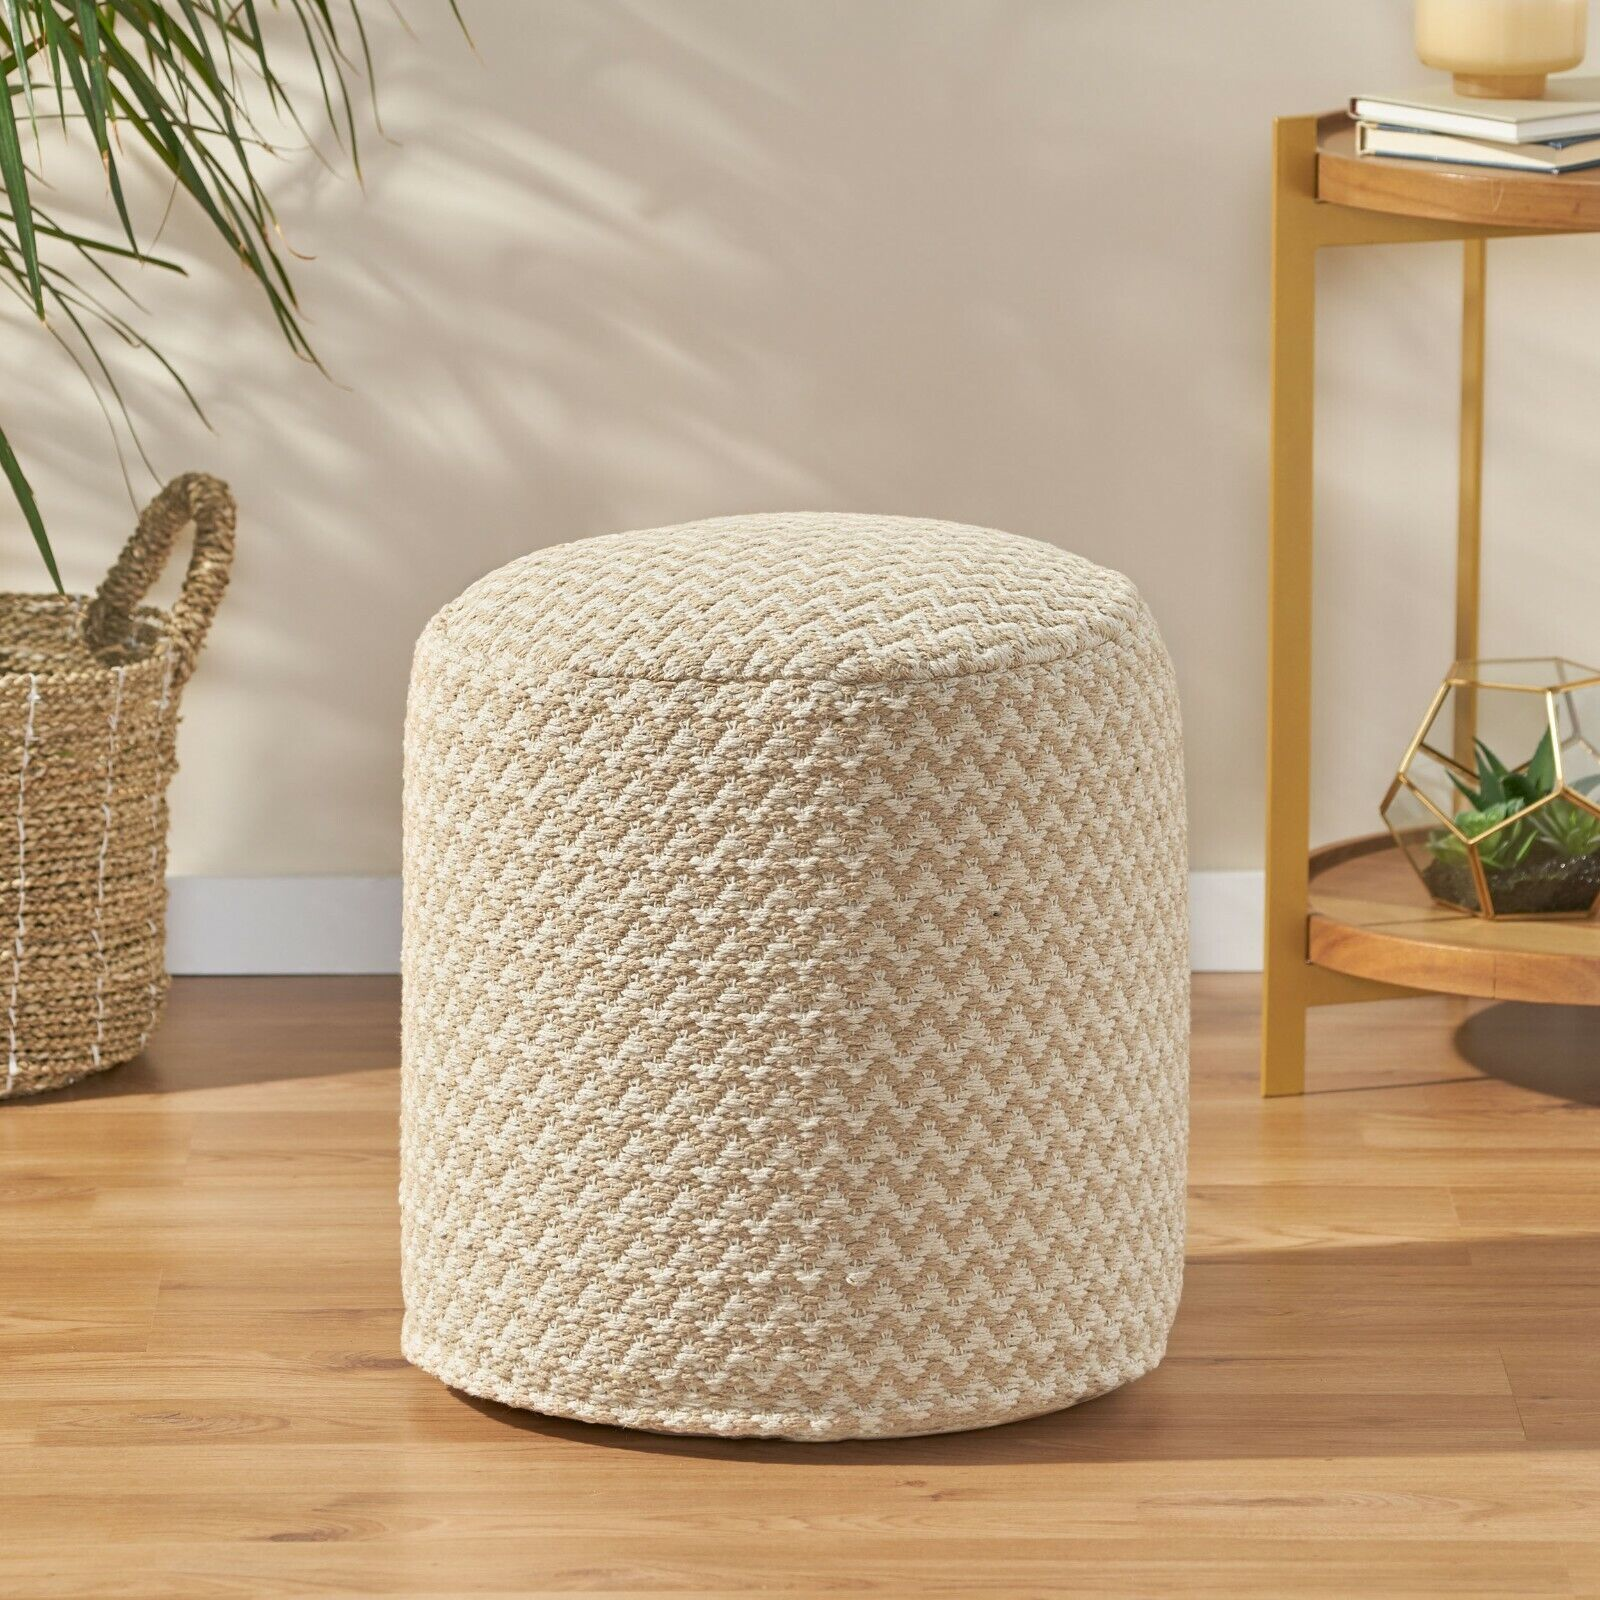 Quincee Boho Fabric Cylinder Pouf Furniture